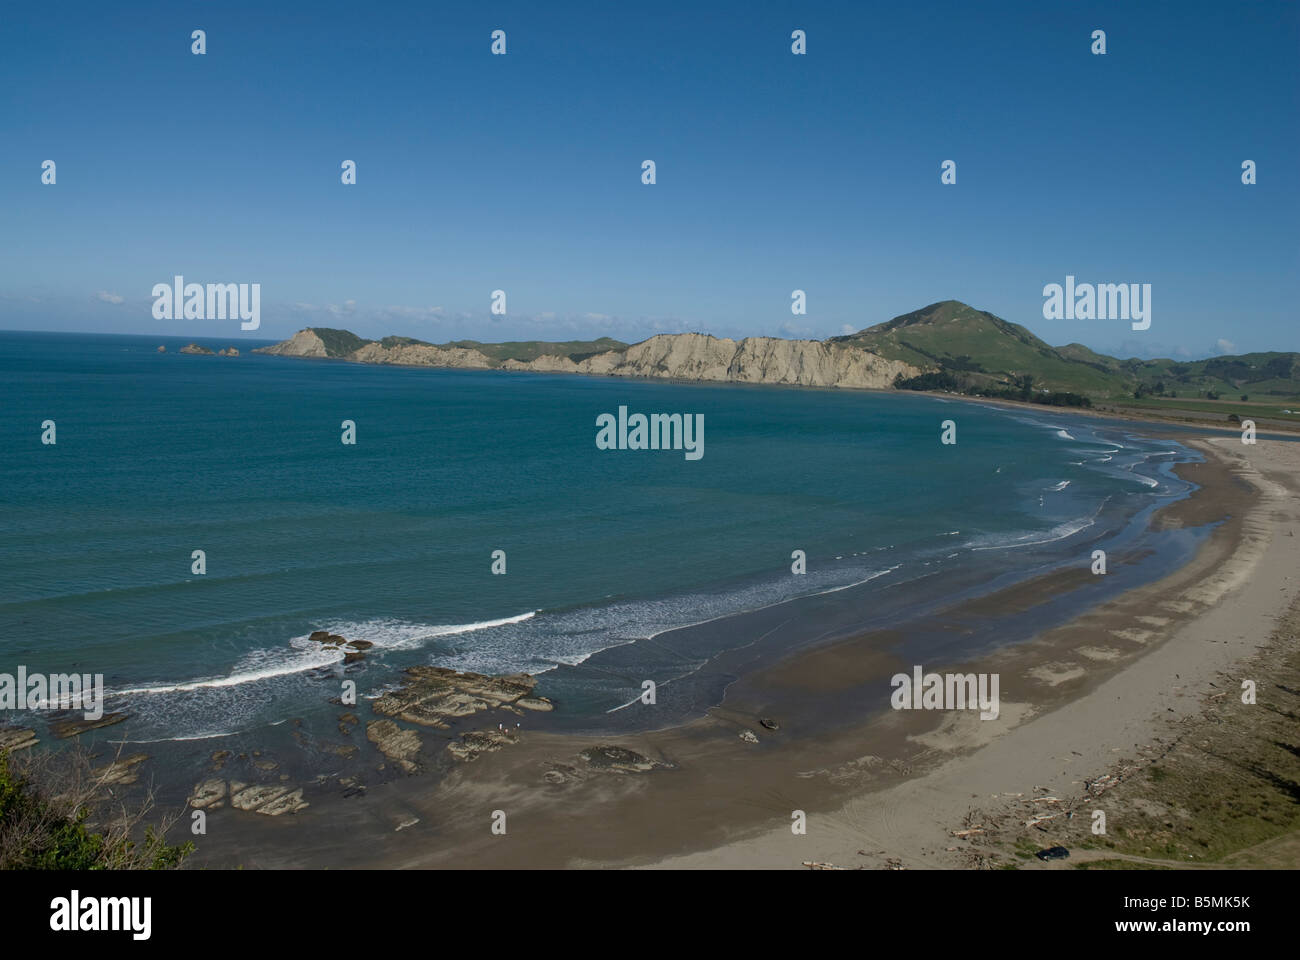 Tolaga Bay beach on the east coast of the North island in New-Zealand. - Stock Image